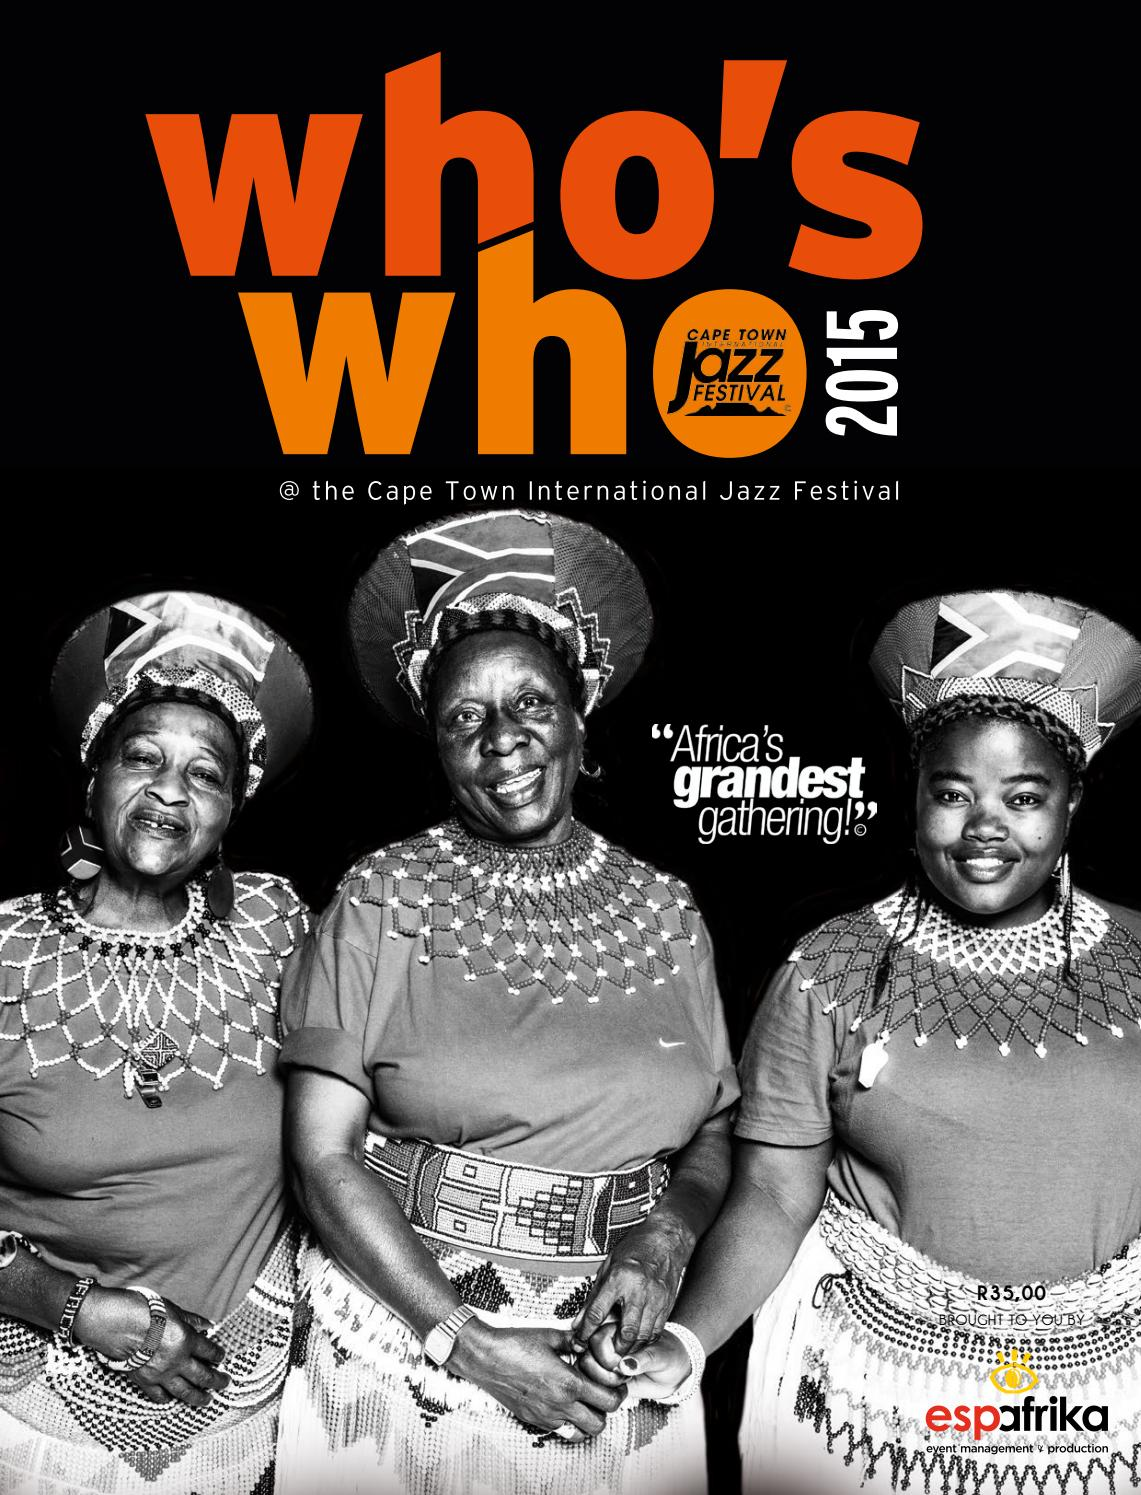 Who's Who 2015 - The Cape Town International Jazz Festival